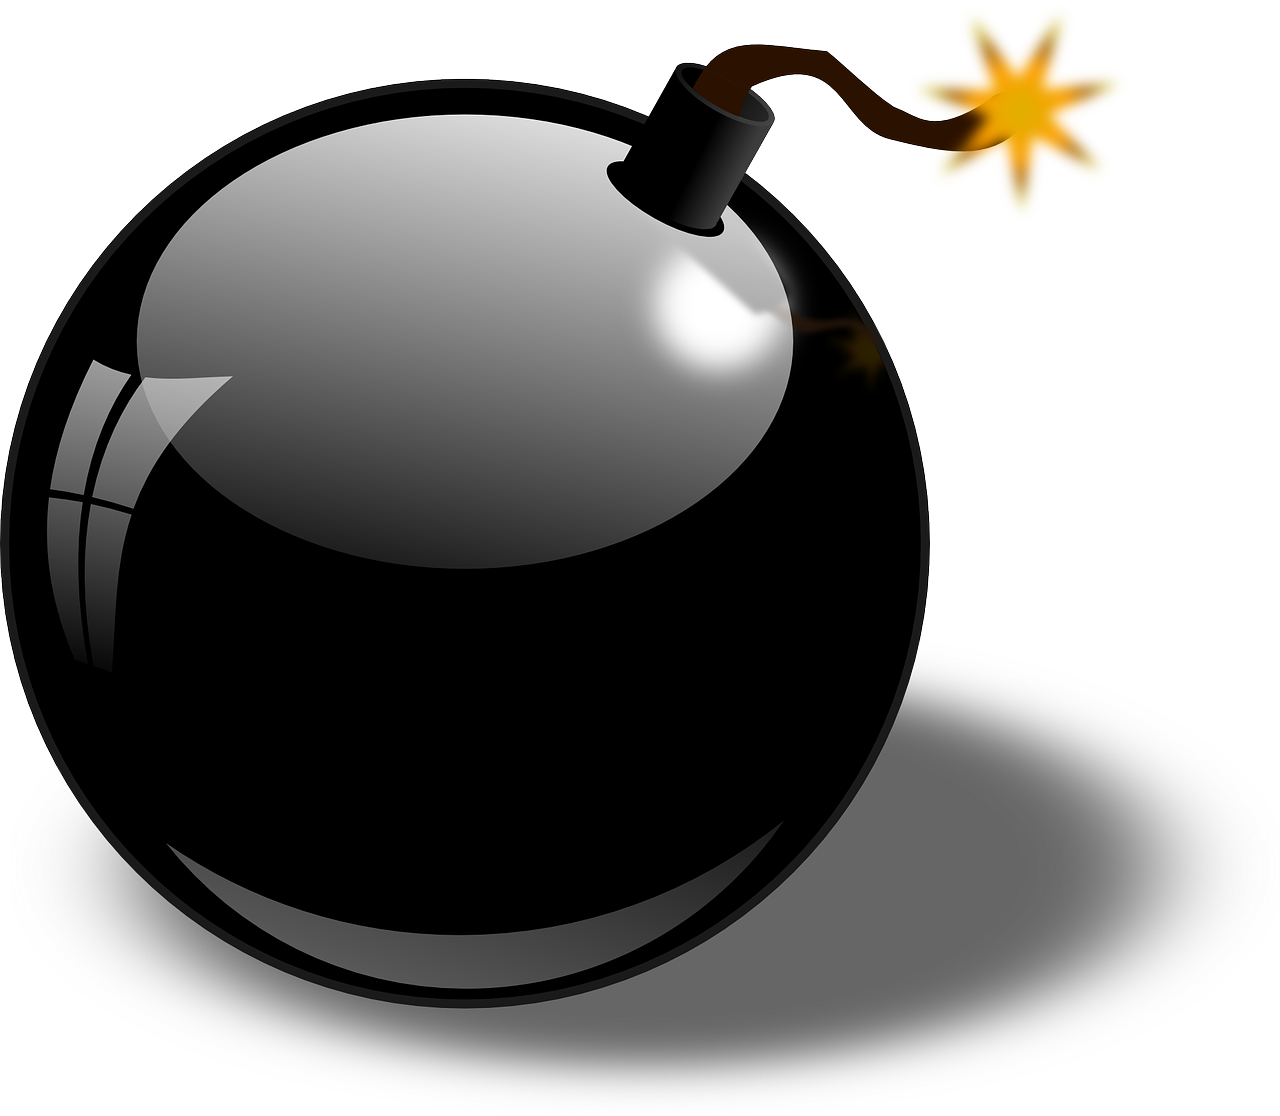 Bomb clipart #14, Download drawings